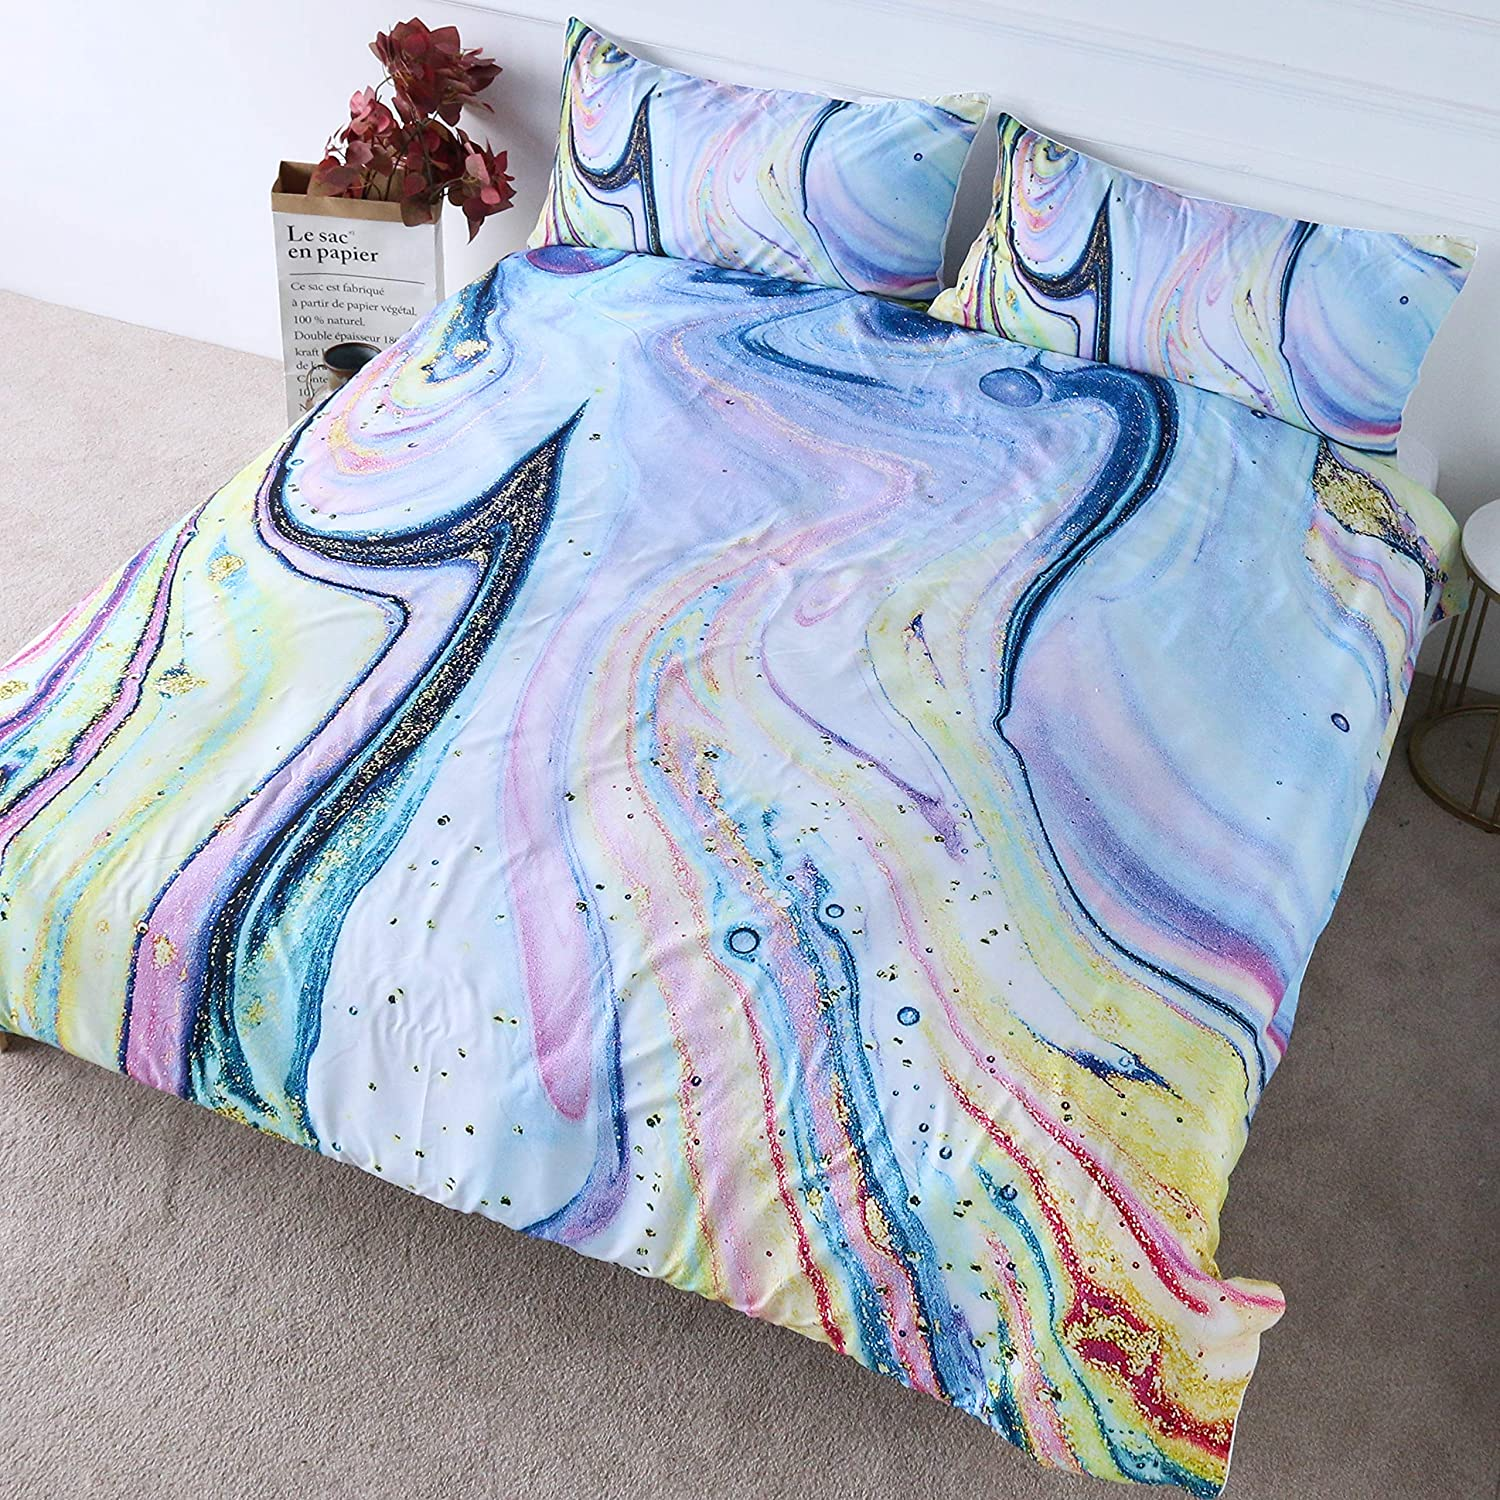 BlessLiving Liquid Colorful Marble Bedding Set Abstract Rainbow Quicksand Duvet Cover 3 Pieces Girl Pink Blue Aesthetic Bed Covers (Twin)